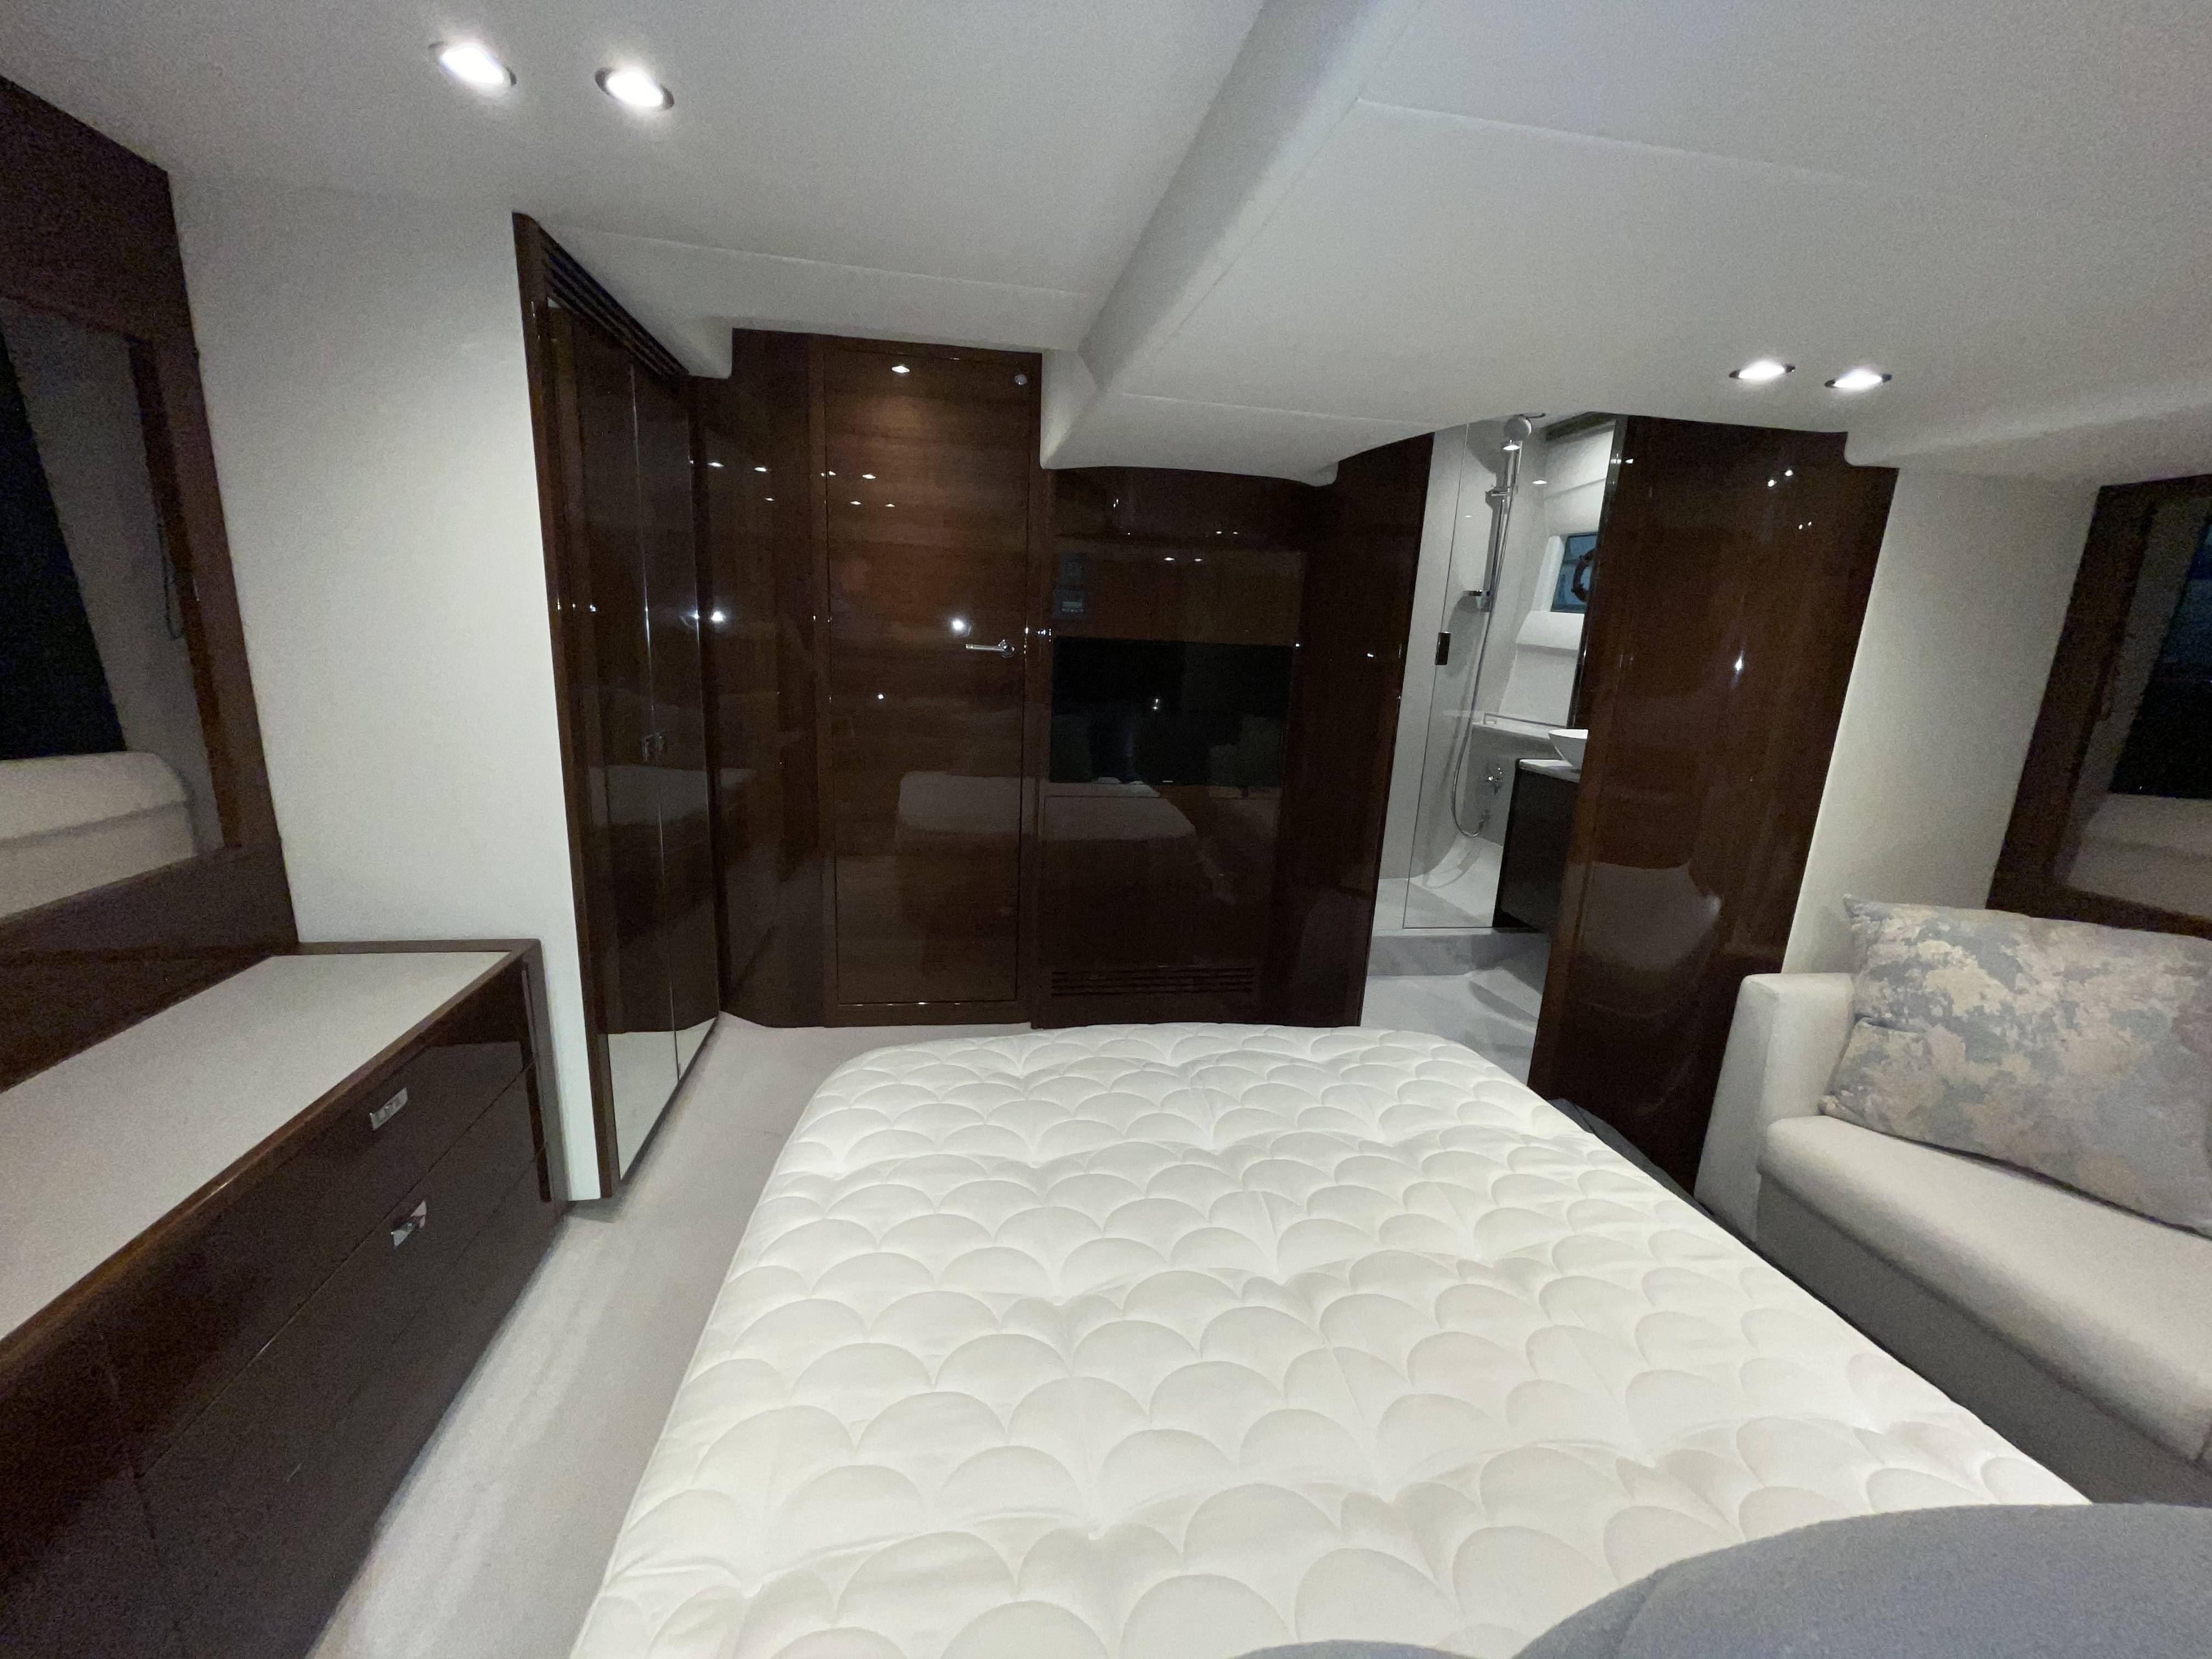 2021 Princess Yachts boat for sale, model of the boat is V50 & Image # 26 of 29